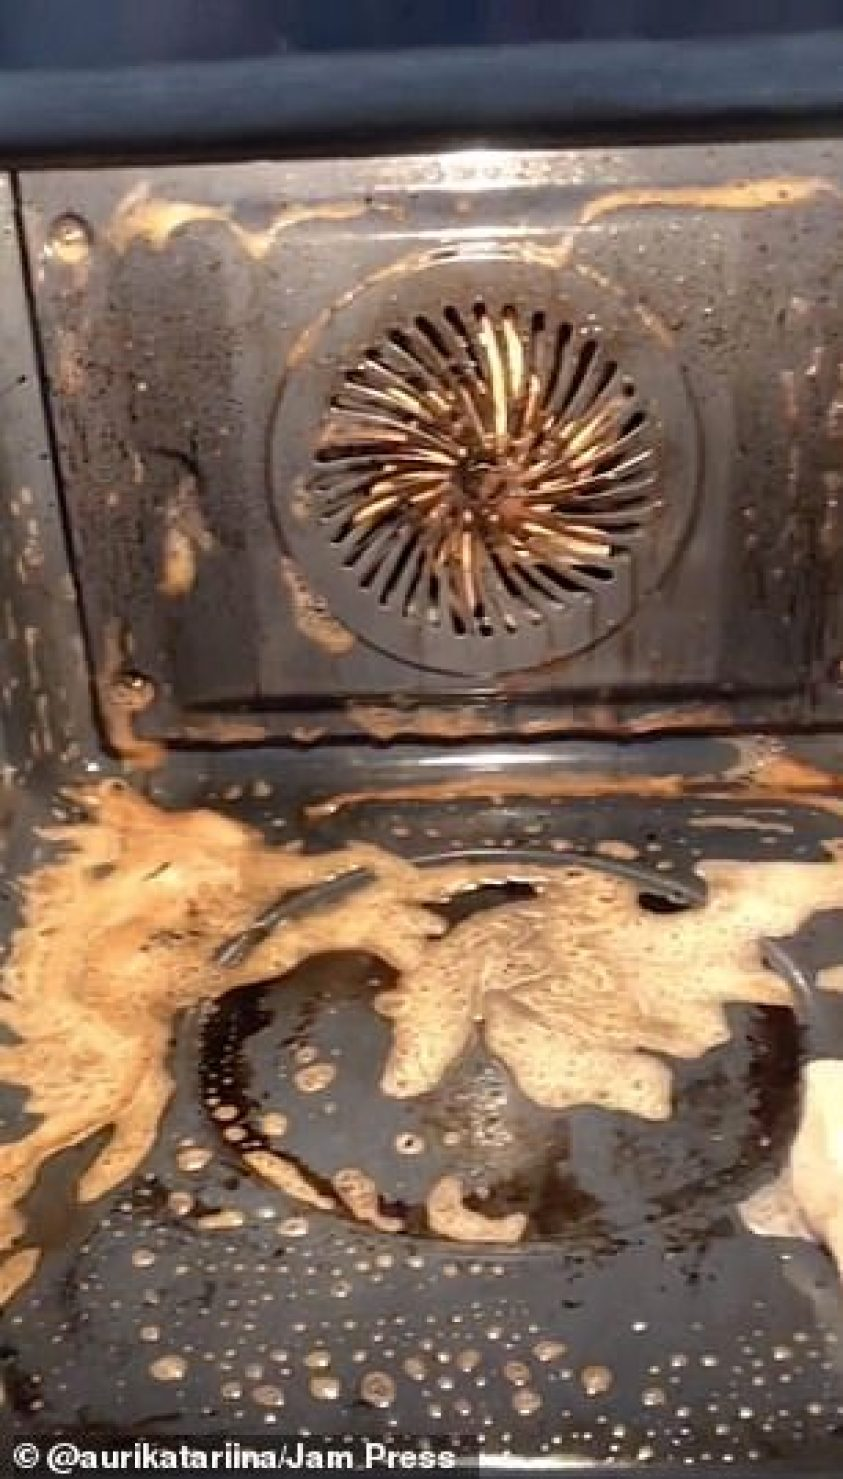 Another tough cleaning project was this oven